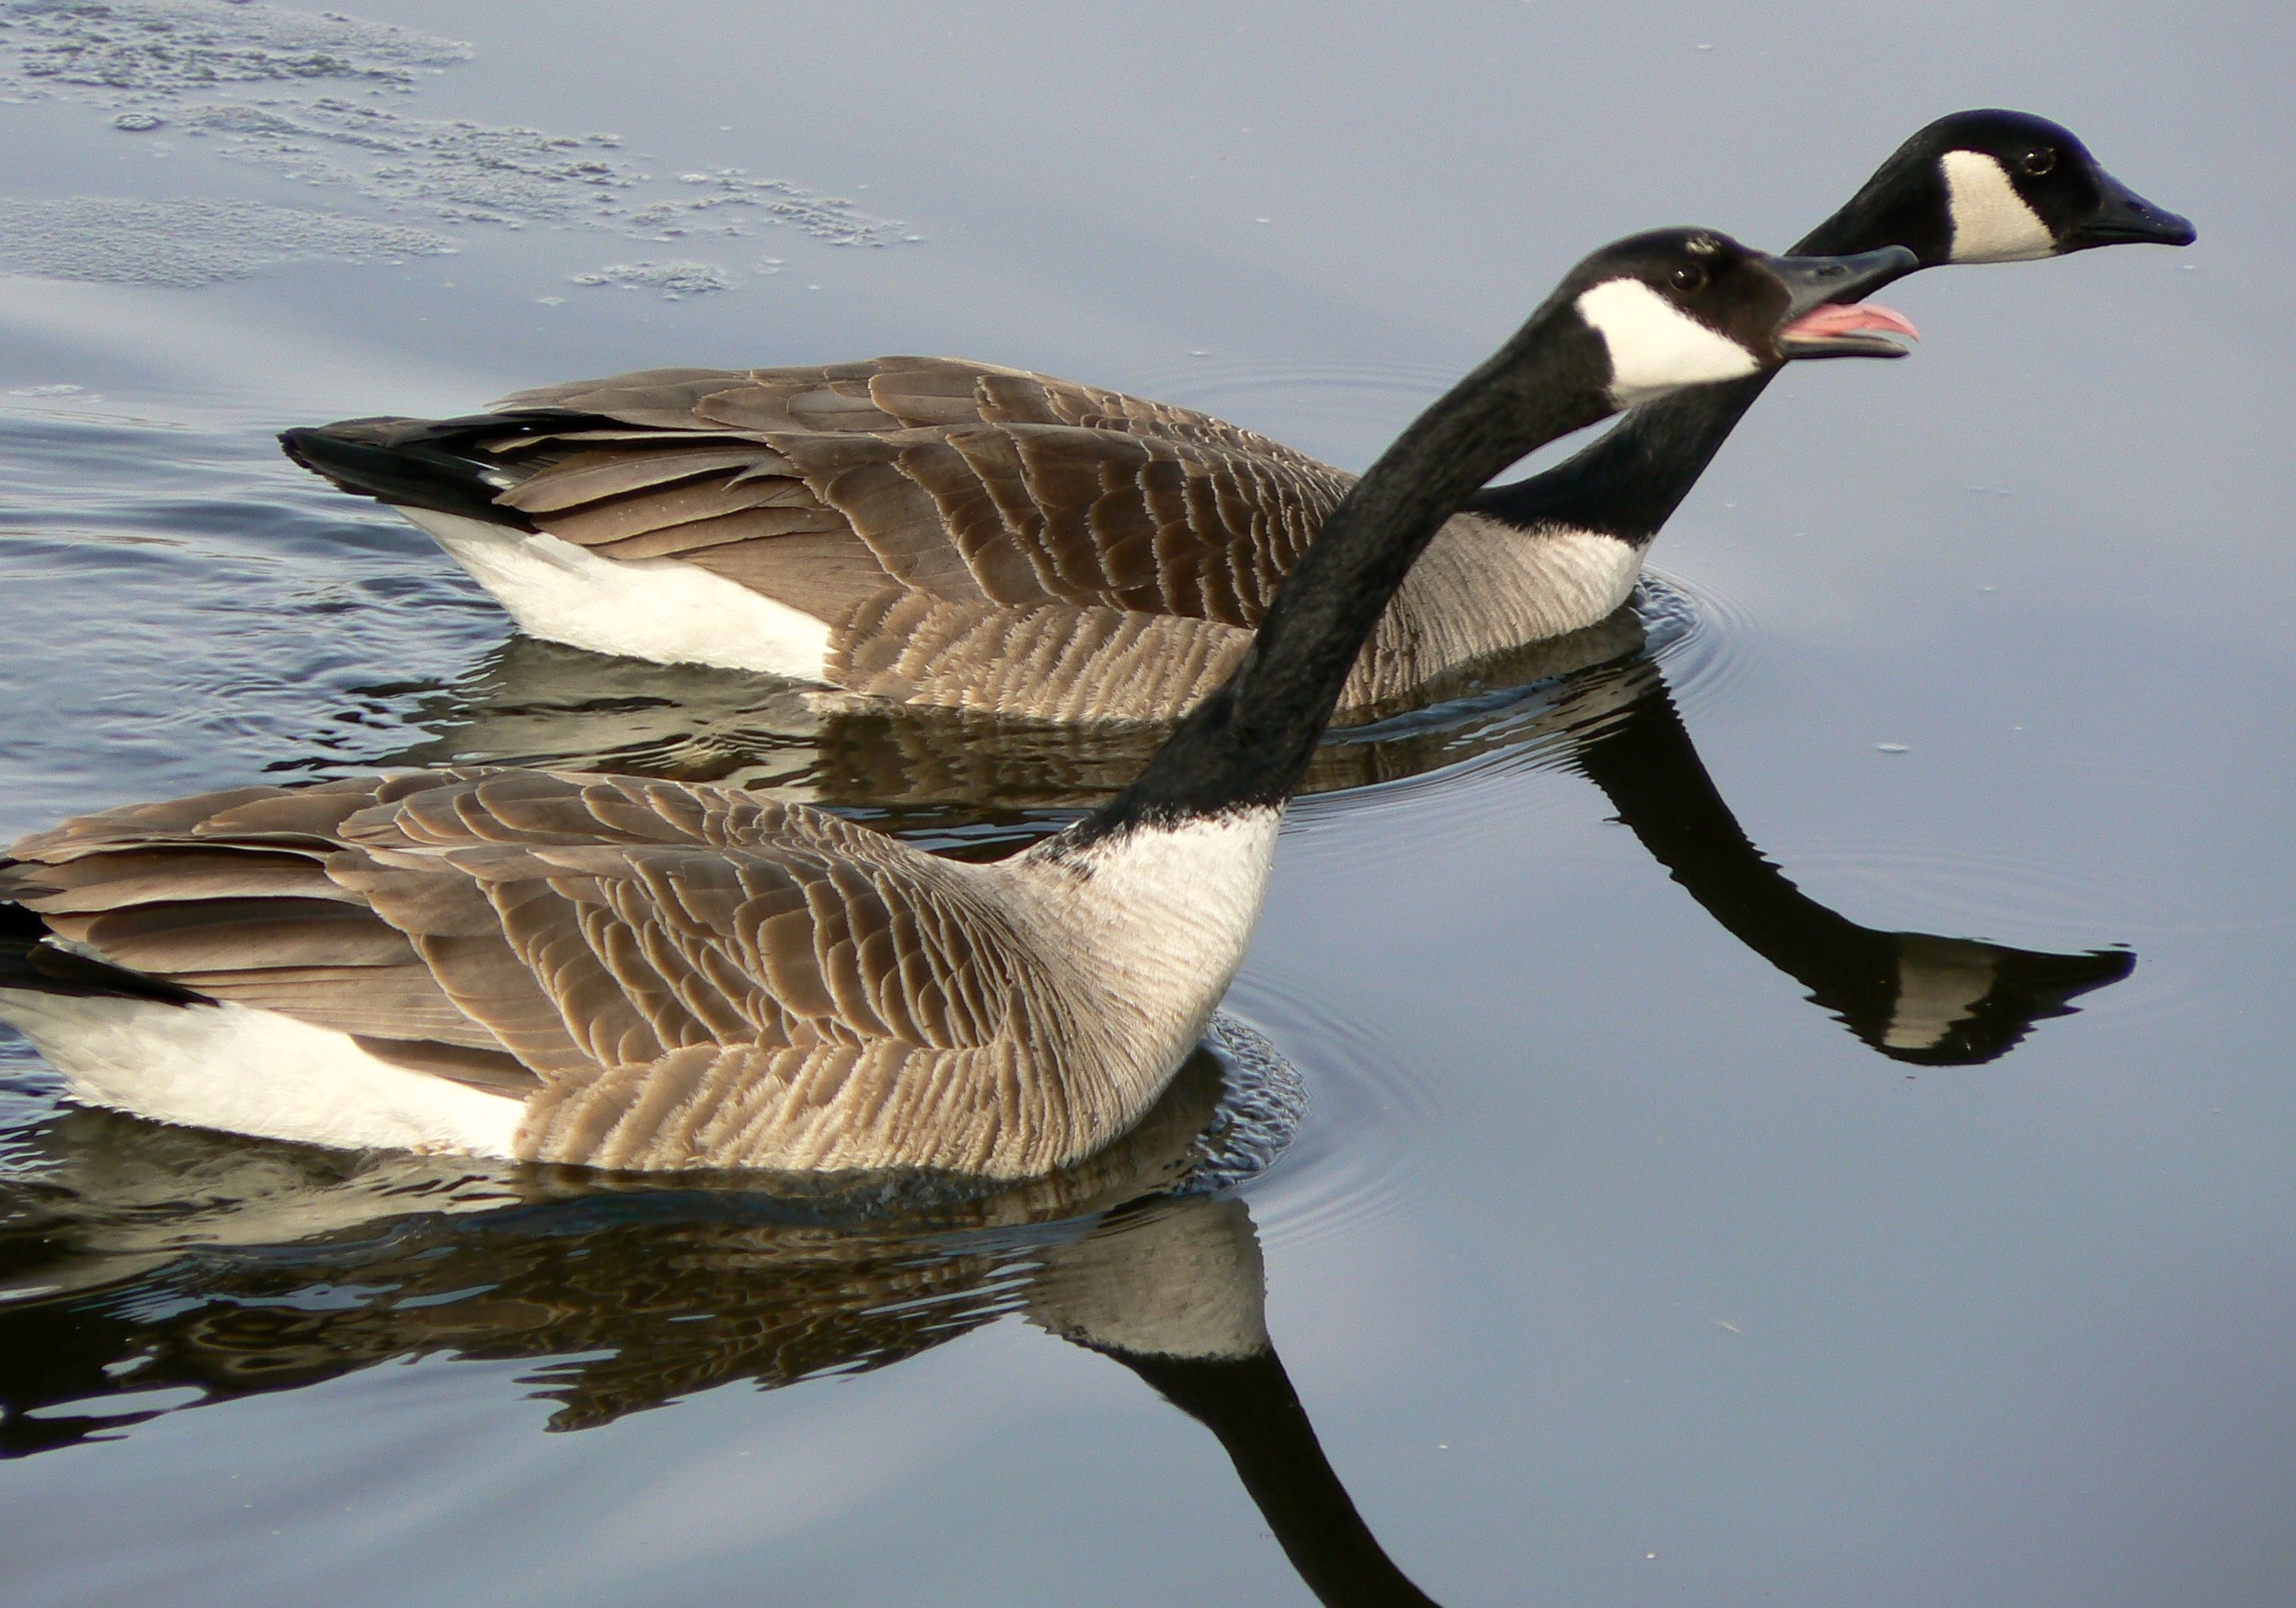 Canadian geese photo